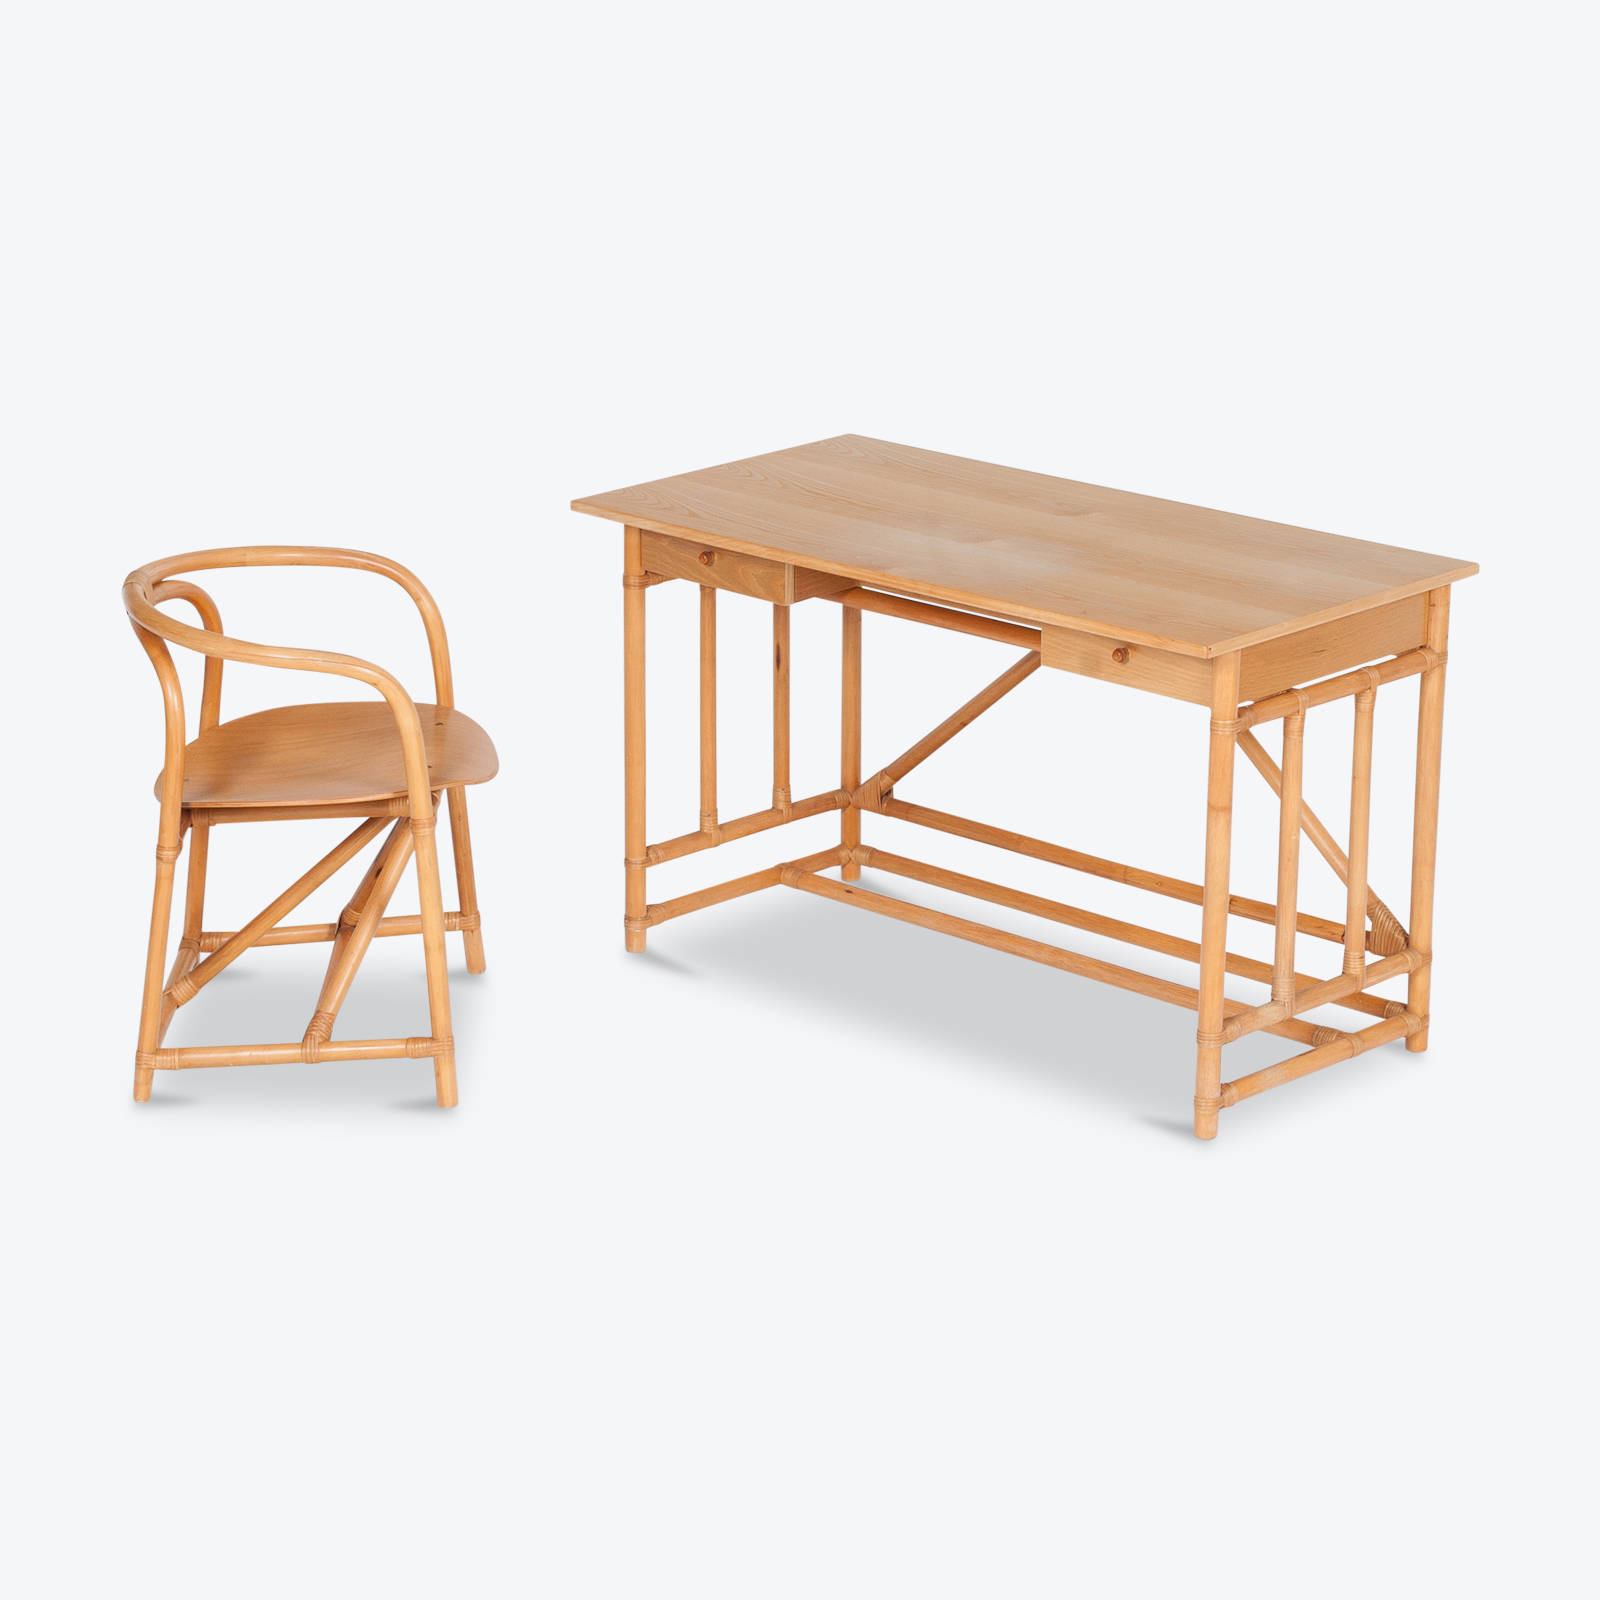 Desk And Chair In Bamboo (mt De 194 705 It)22 Copy